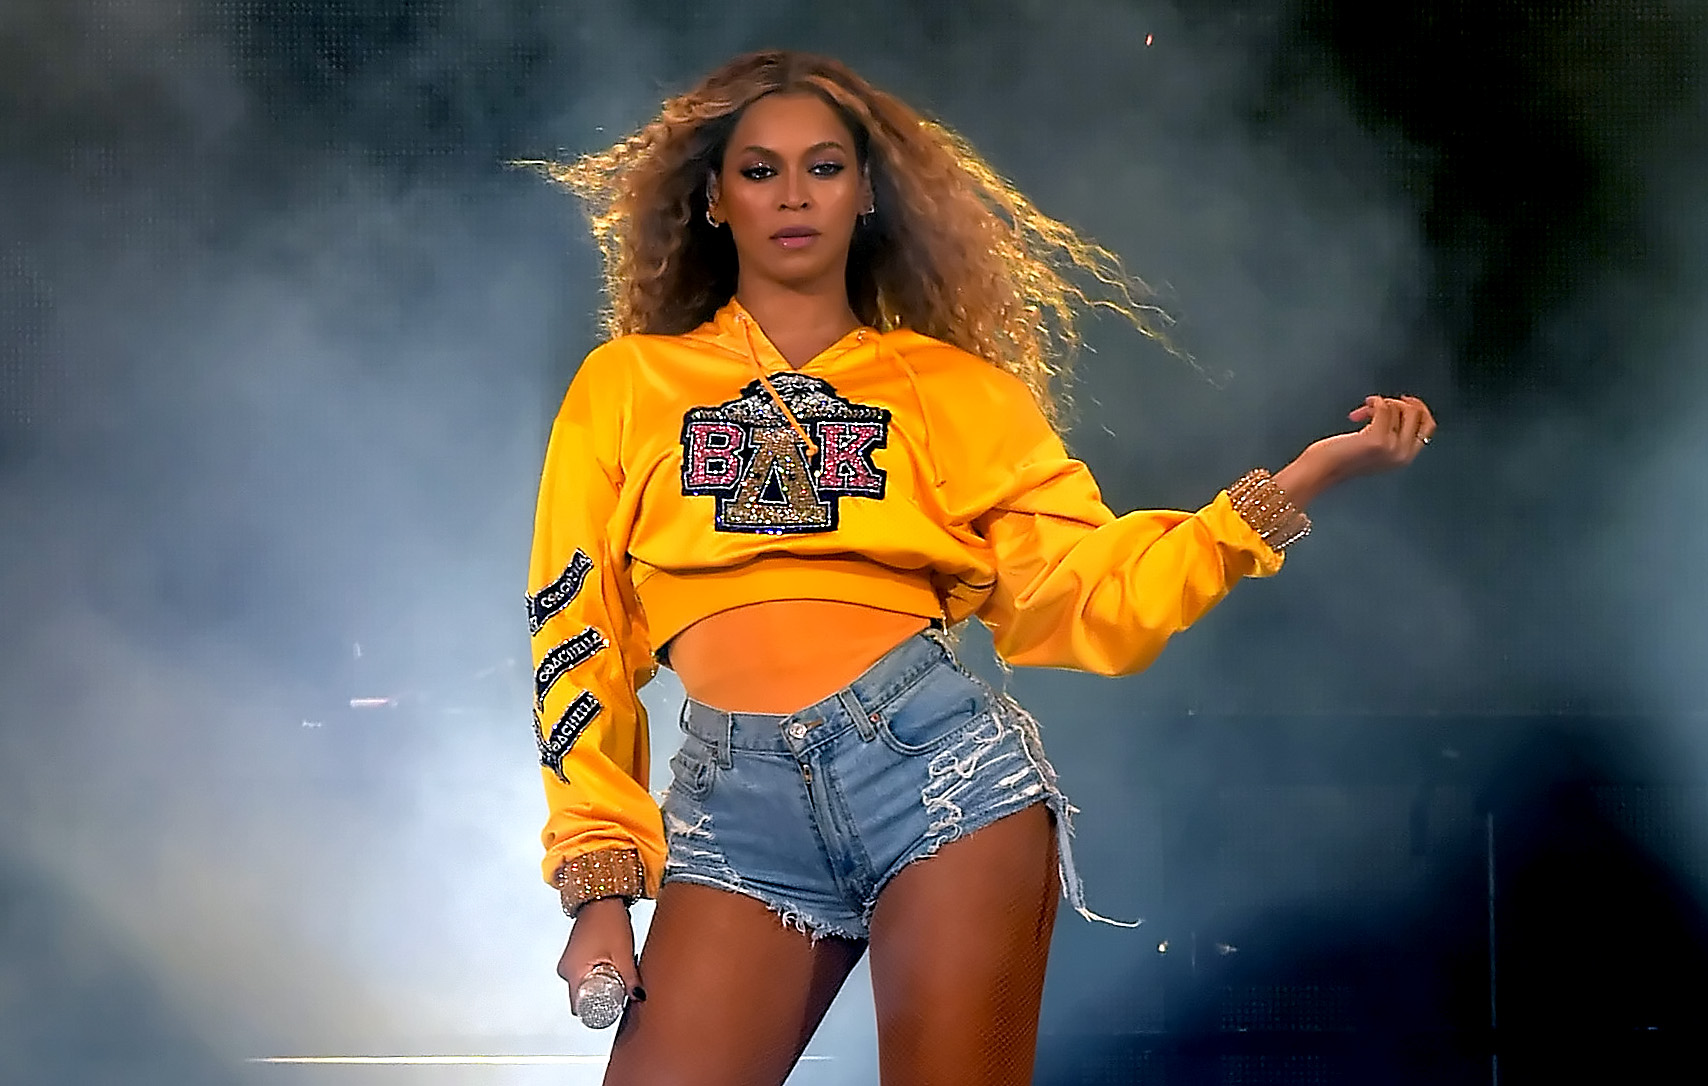 Beyonce Knowles performs onstage during 2018 Coachella Valley Music And Arts Festival Weekend 1 at the Empire Polo Field in Indio, Calif. on April 14, 2018.